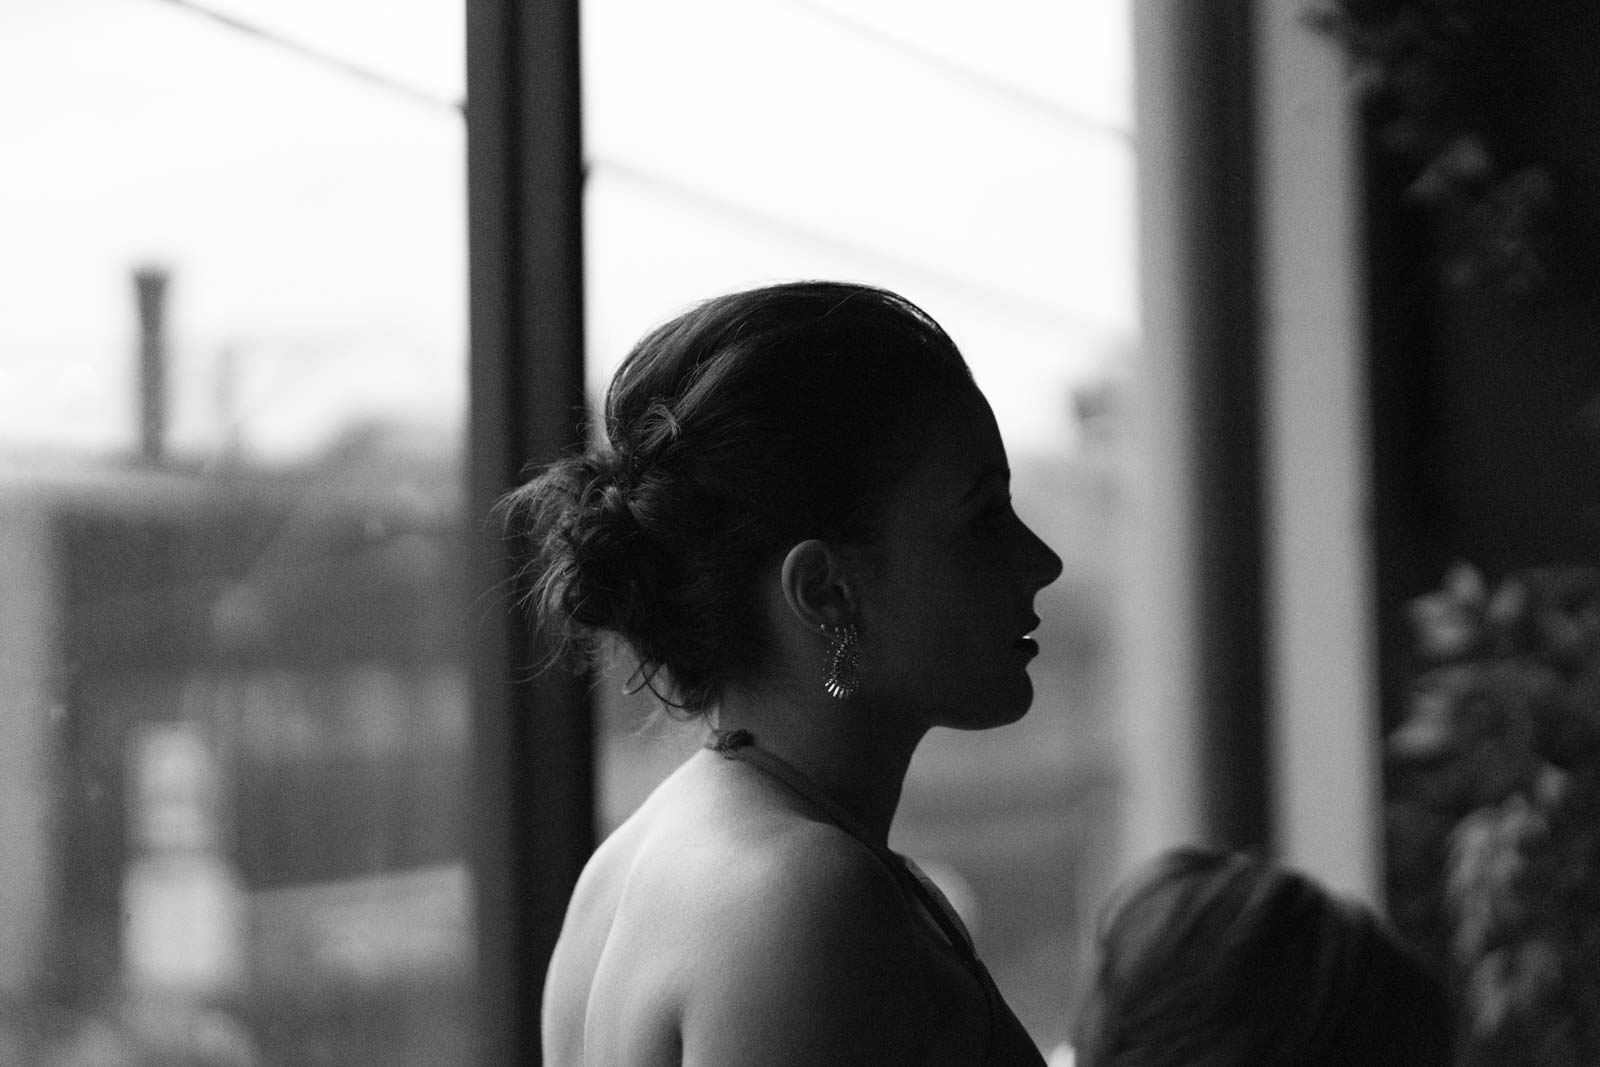 Black and white photo of a Bride, with contrasting shadows. Photo by Erika's Way Photography